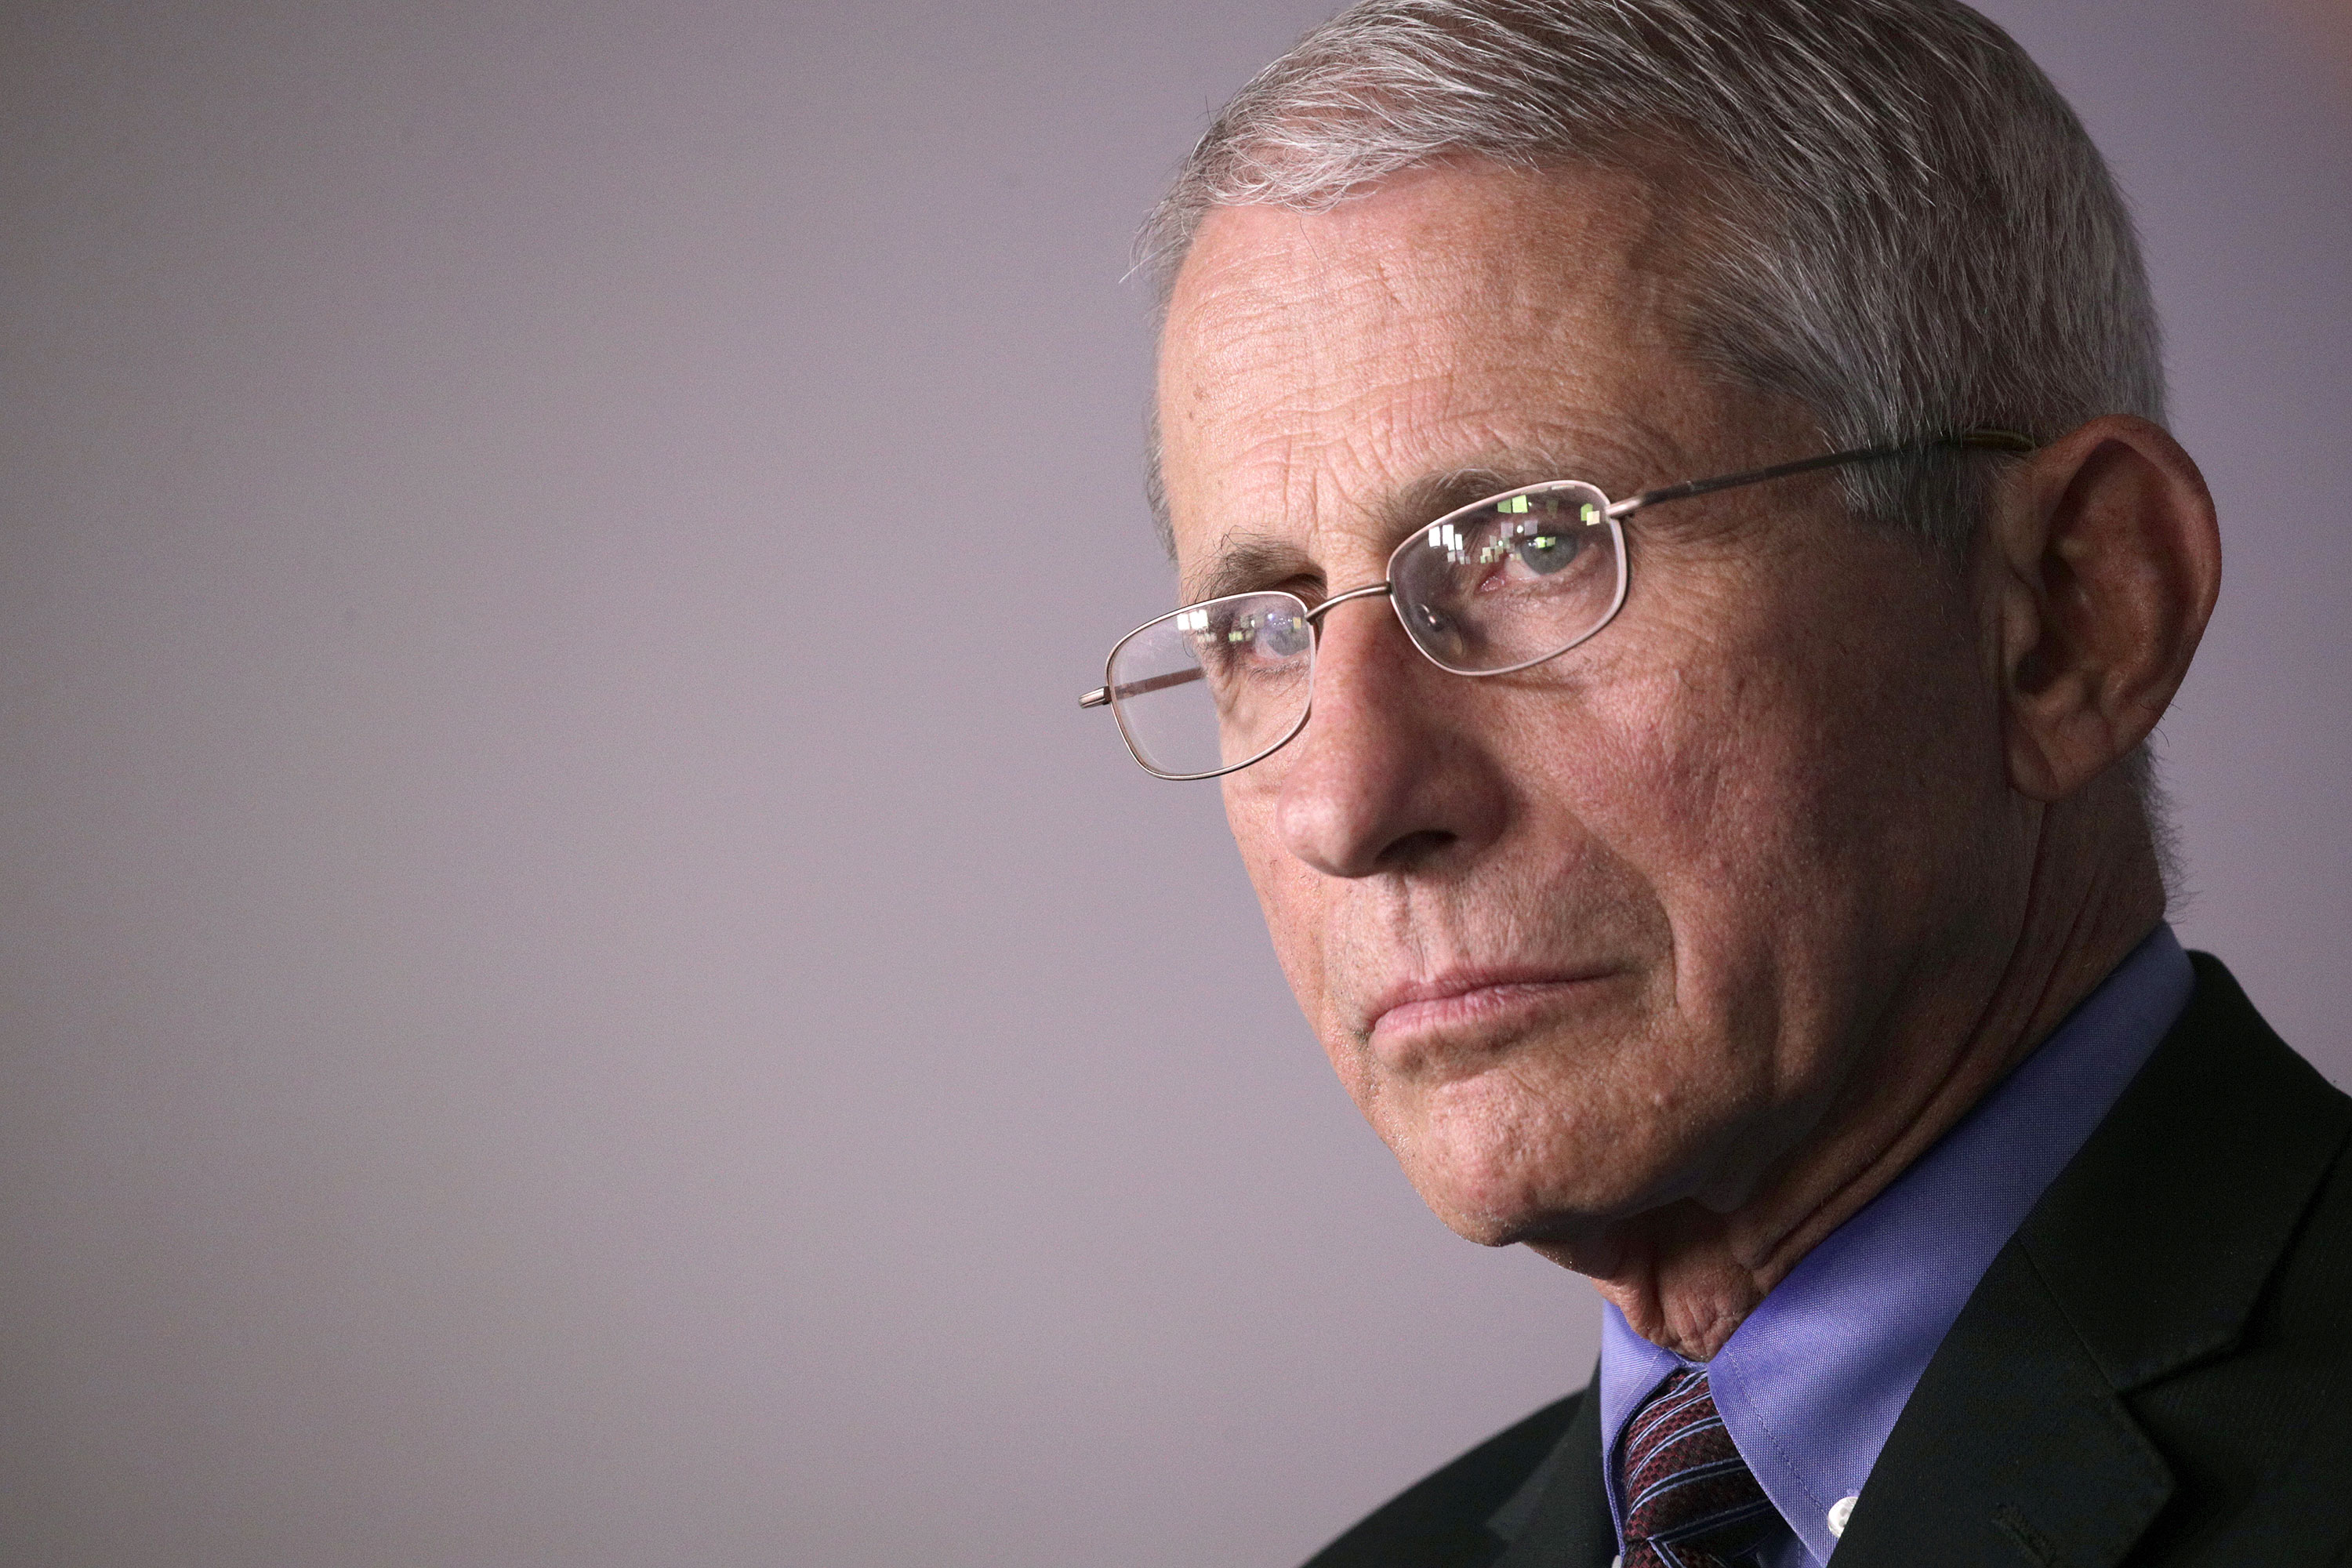 Anthony Fauci attends a coronavirus briefing at the White House on April 9.